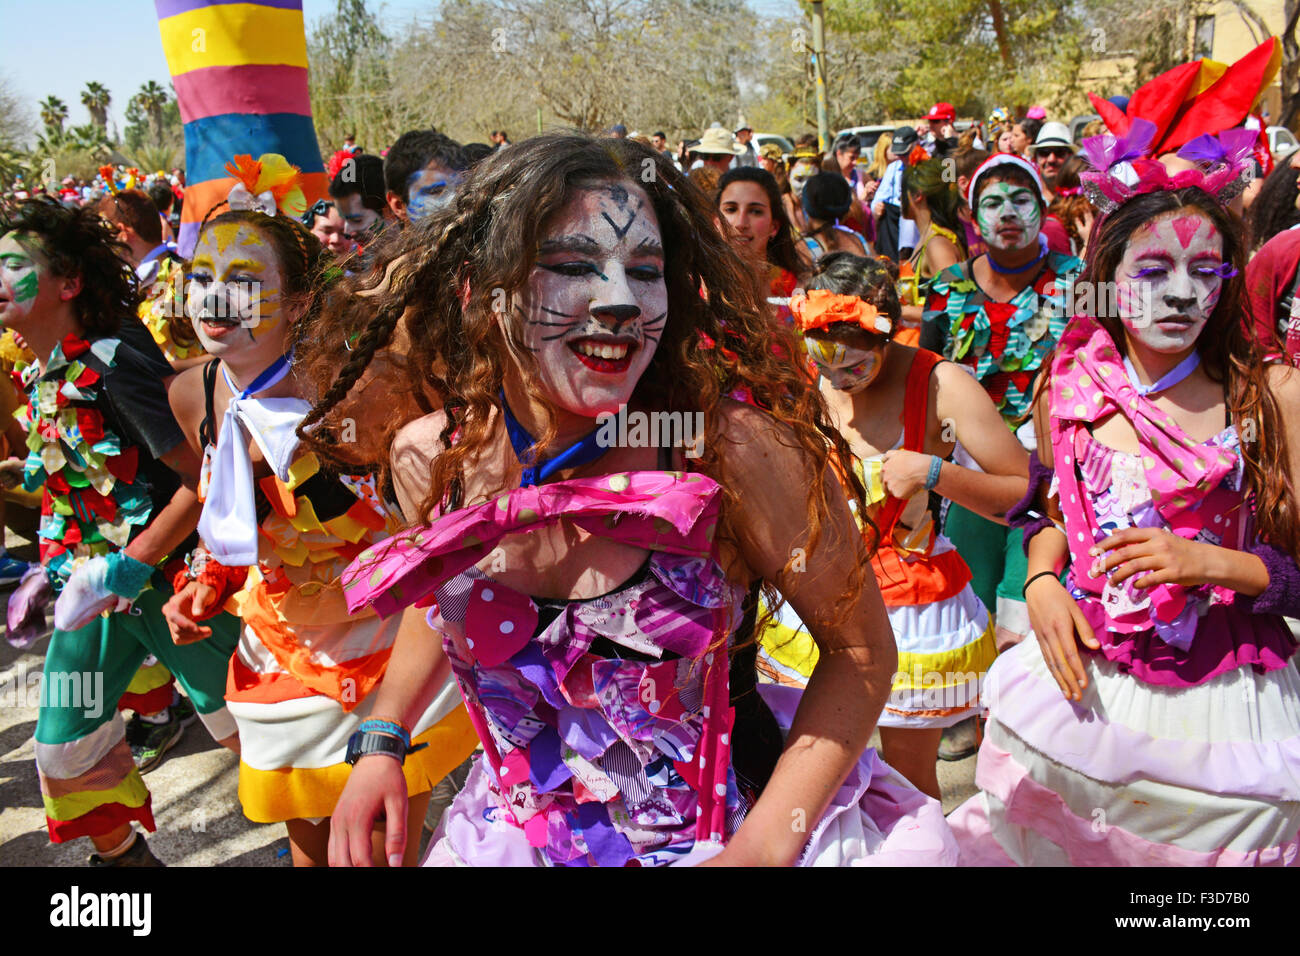 Purim-Karneval in Israel Stockbild